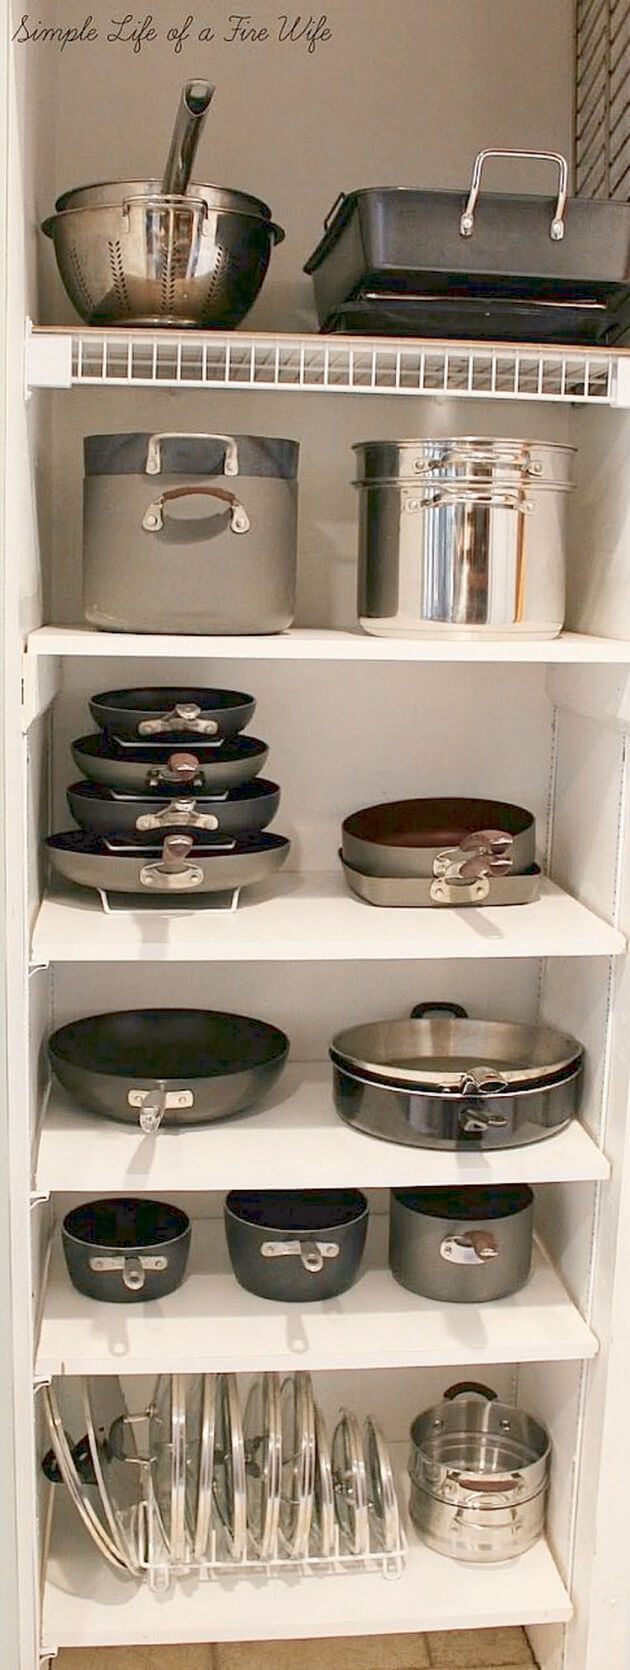 Kitchen Storage Ideas For Pots And Pans Best 20 Pot Storage Ideas On Pinterest  Storing Pot Lids Pot